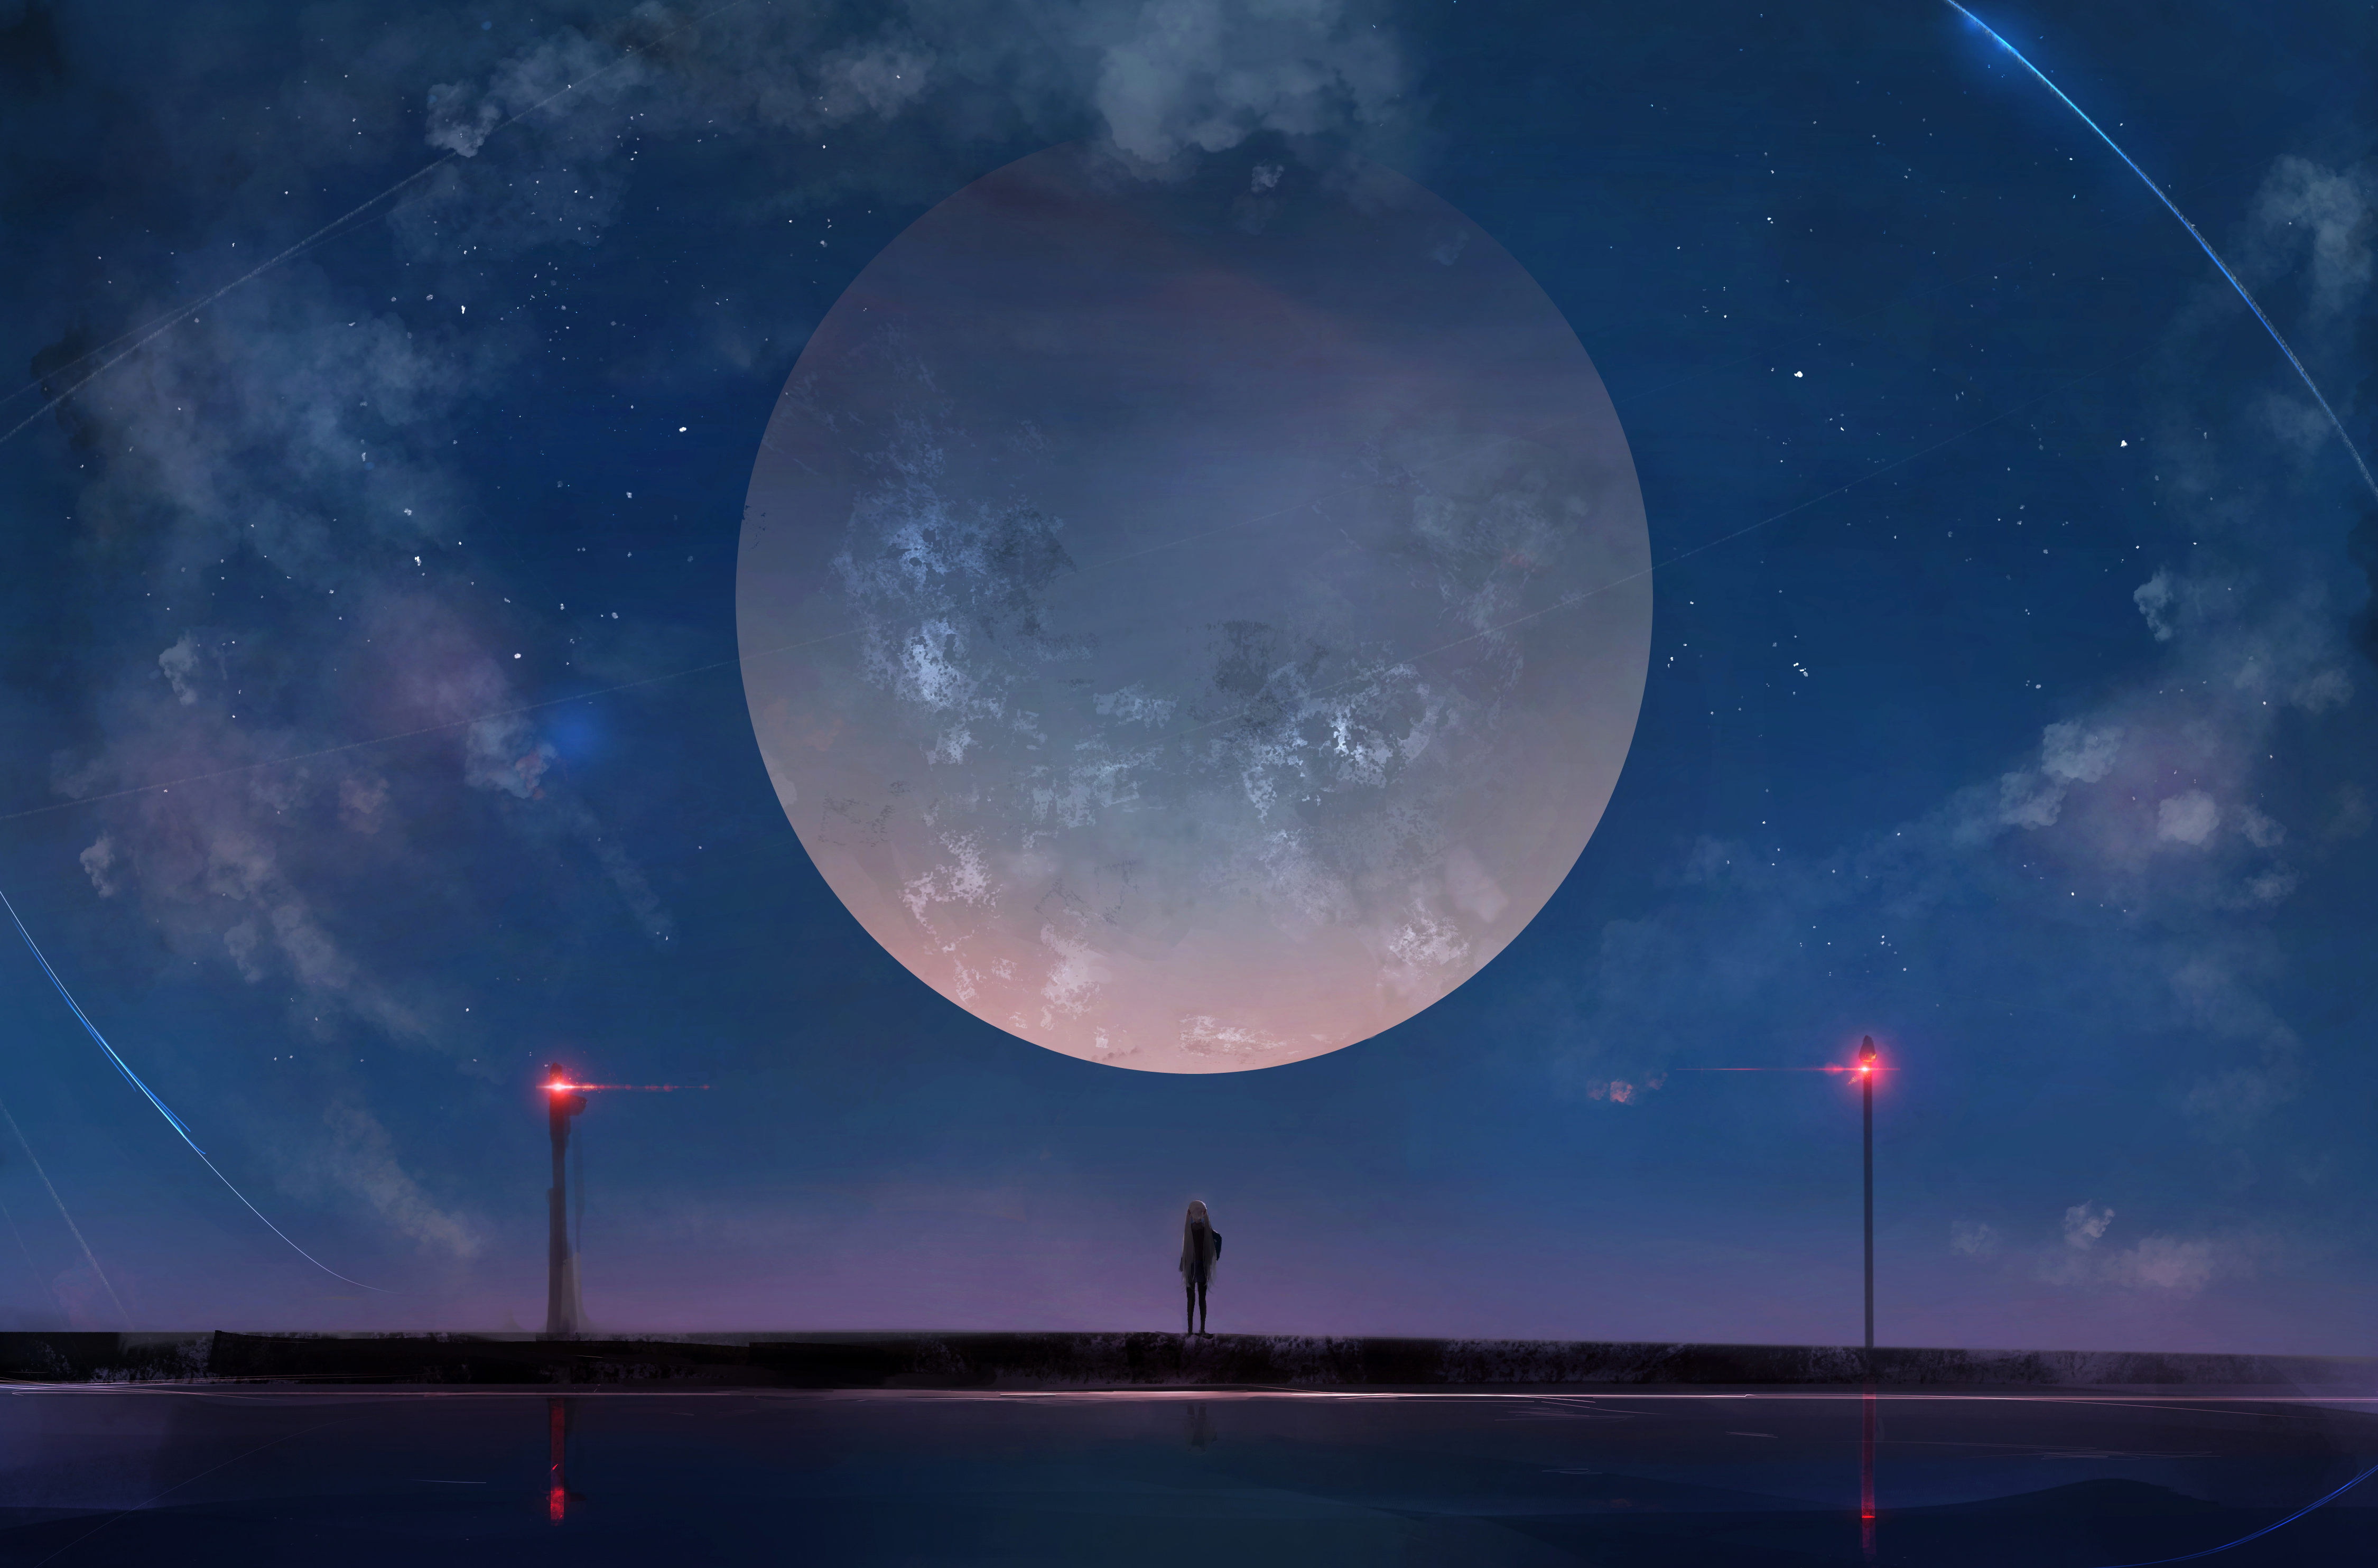 Wallpaper Anime girl at night with moon